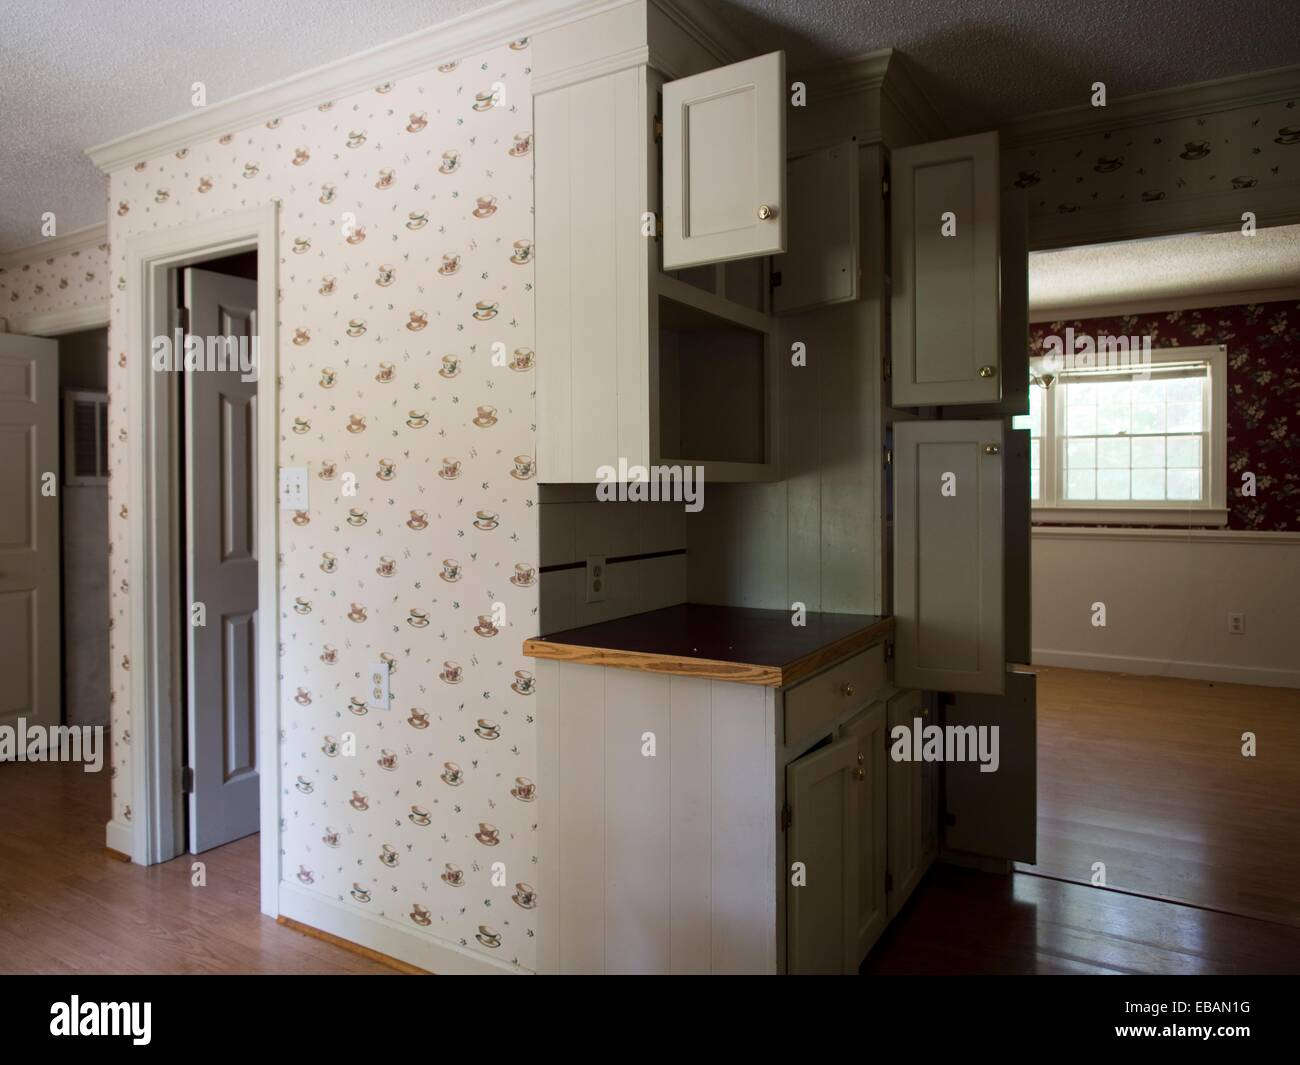 Empty Cabinets Inside The Kitchen Of A Foreclosed Home In Burlington, North  Carolina, United States